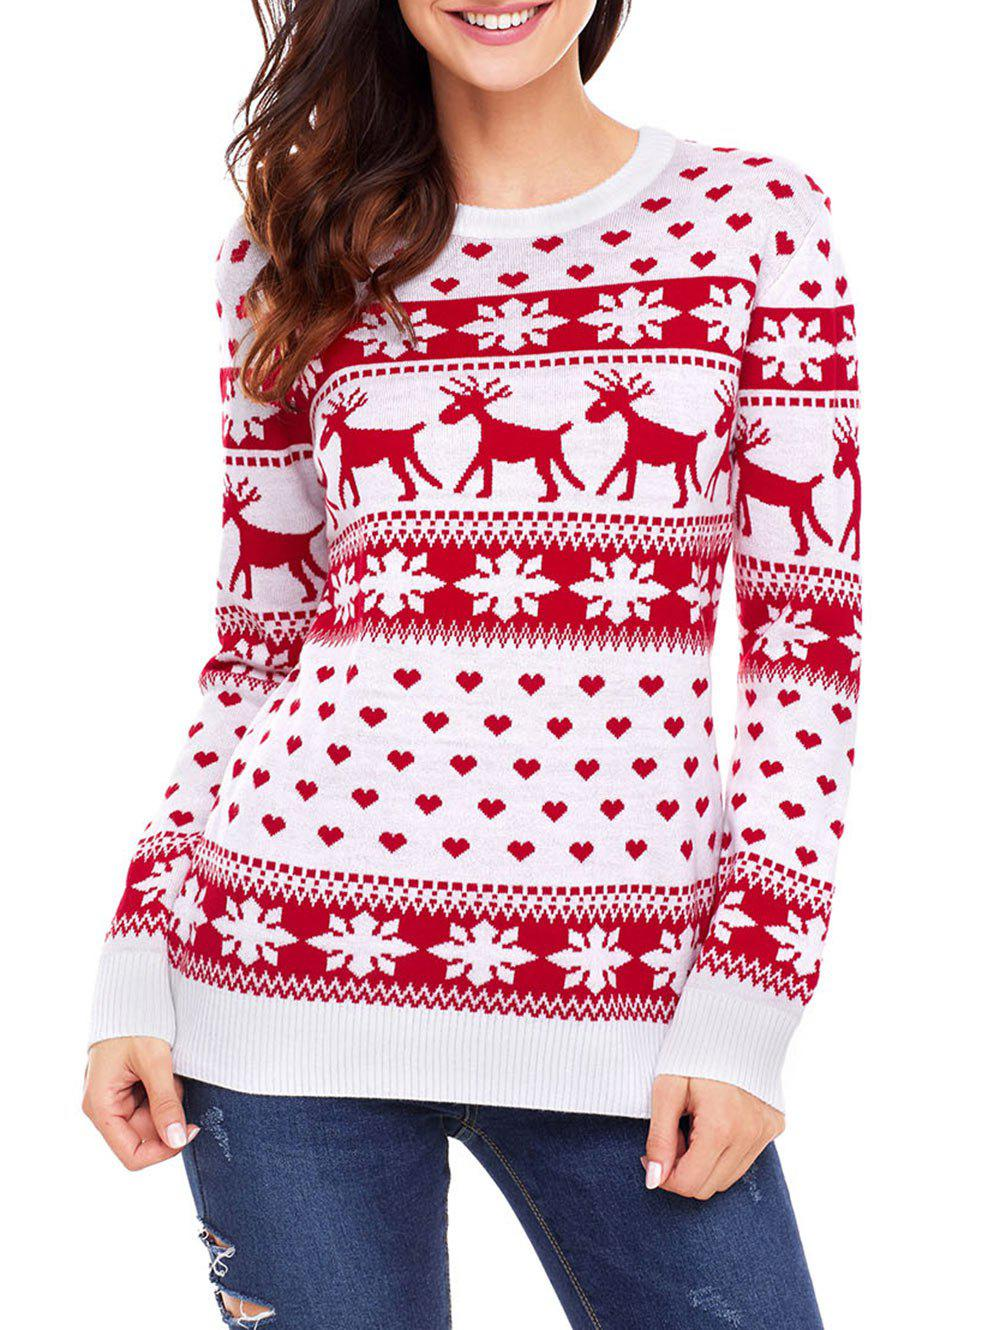 Chic Christmas Snowflake Deer Heart Jacquard Sweater